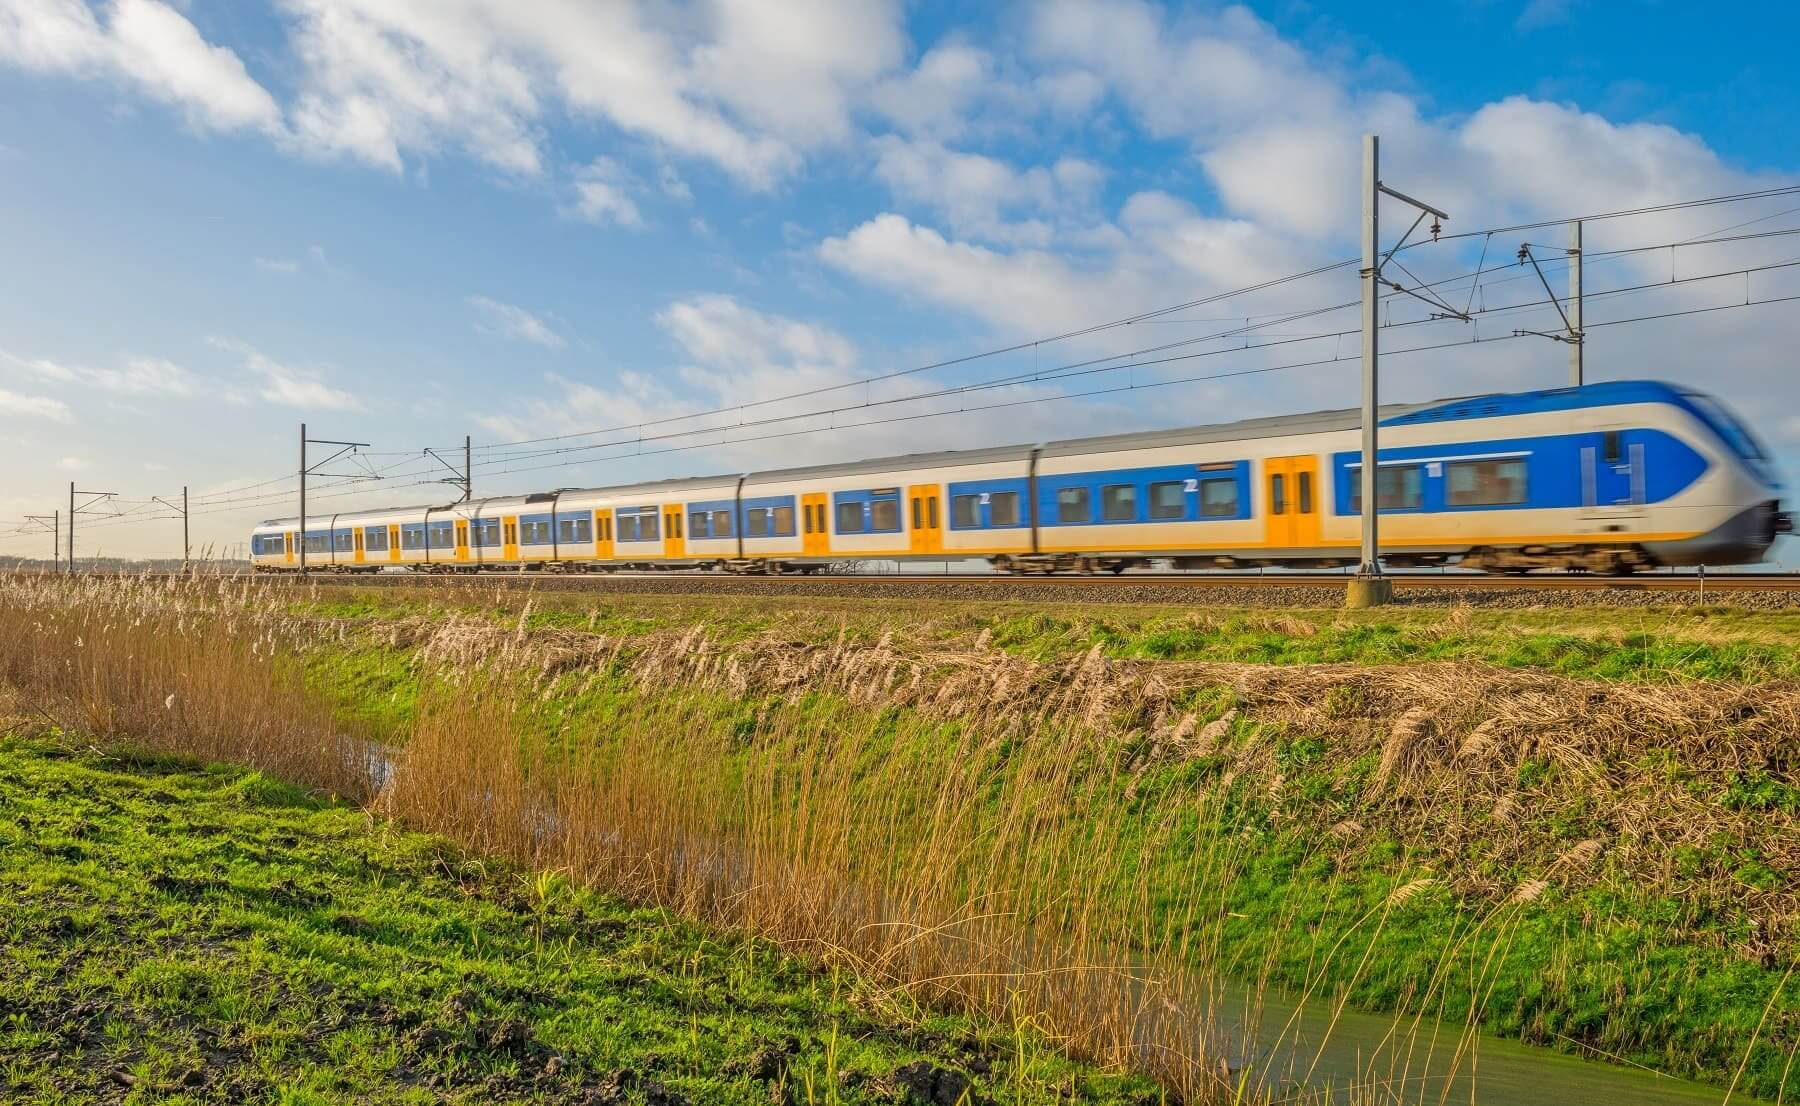 transports in netherlands